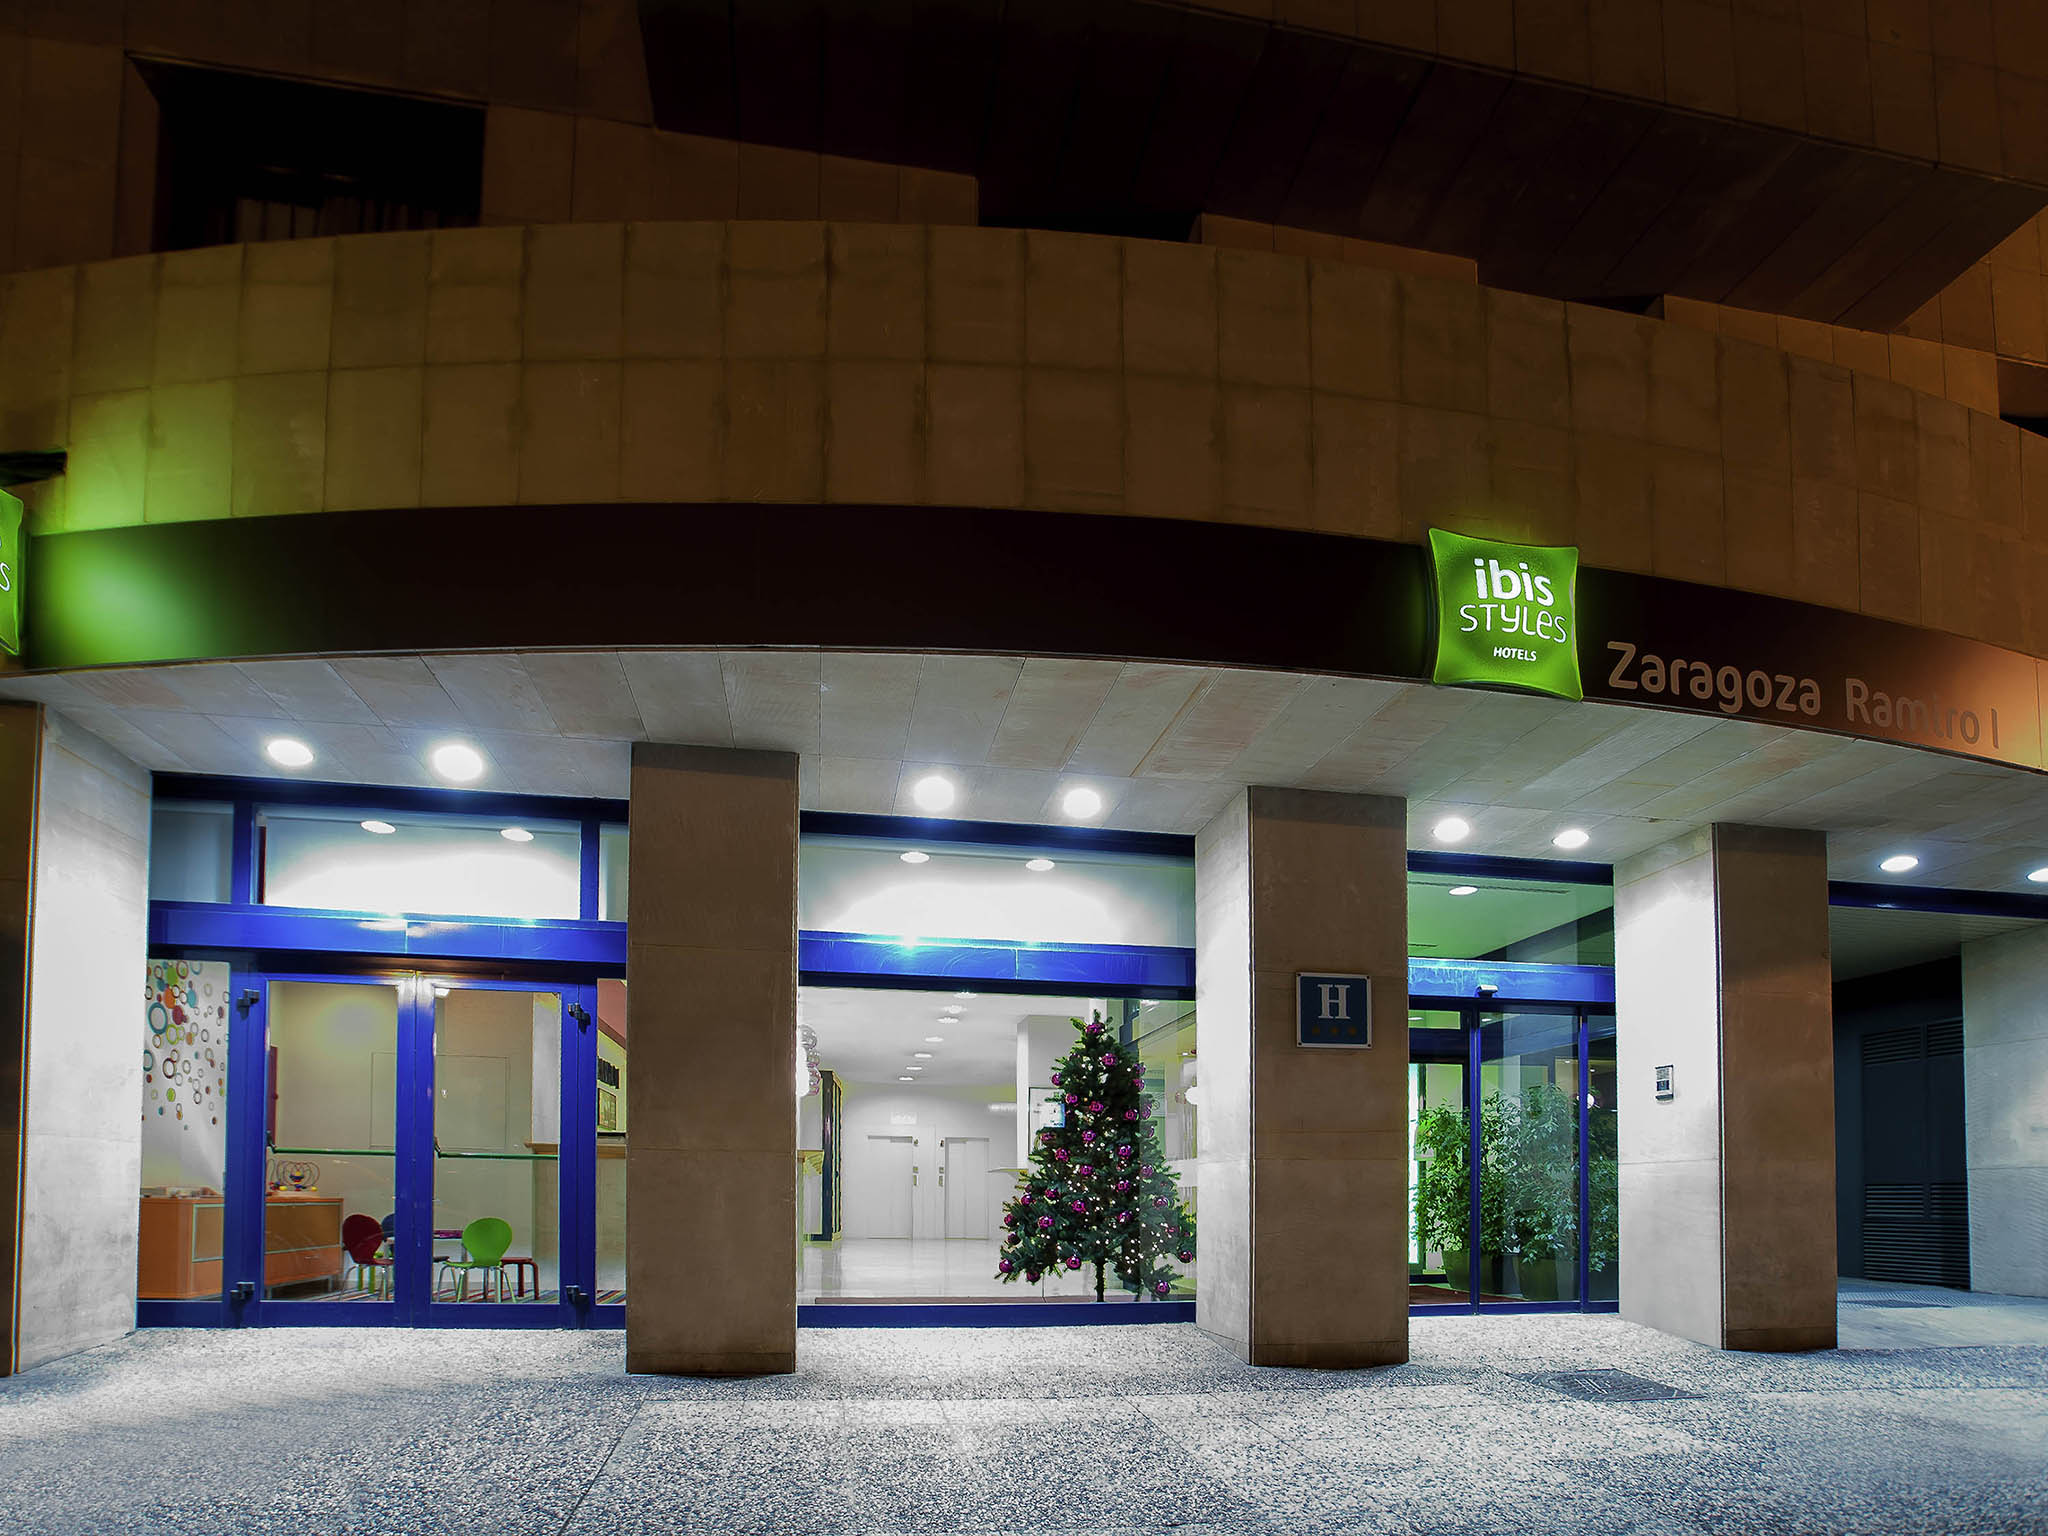 Hotel in ZARAGOZA Book at this ibis Styles hotel in Zaragoza